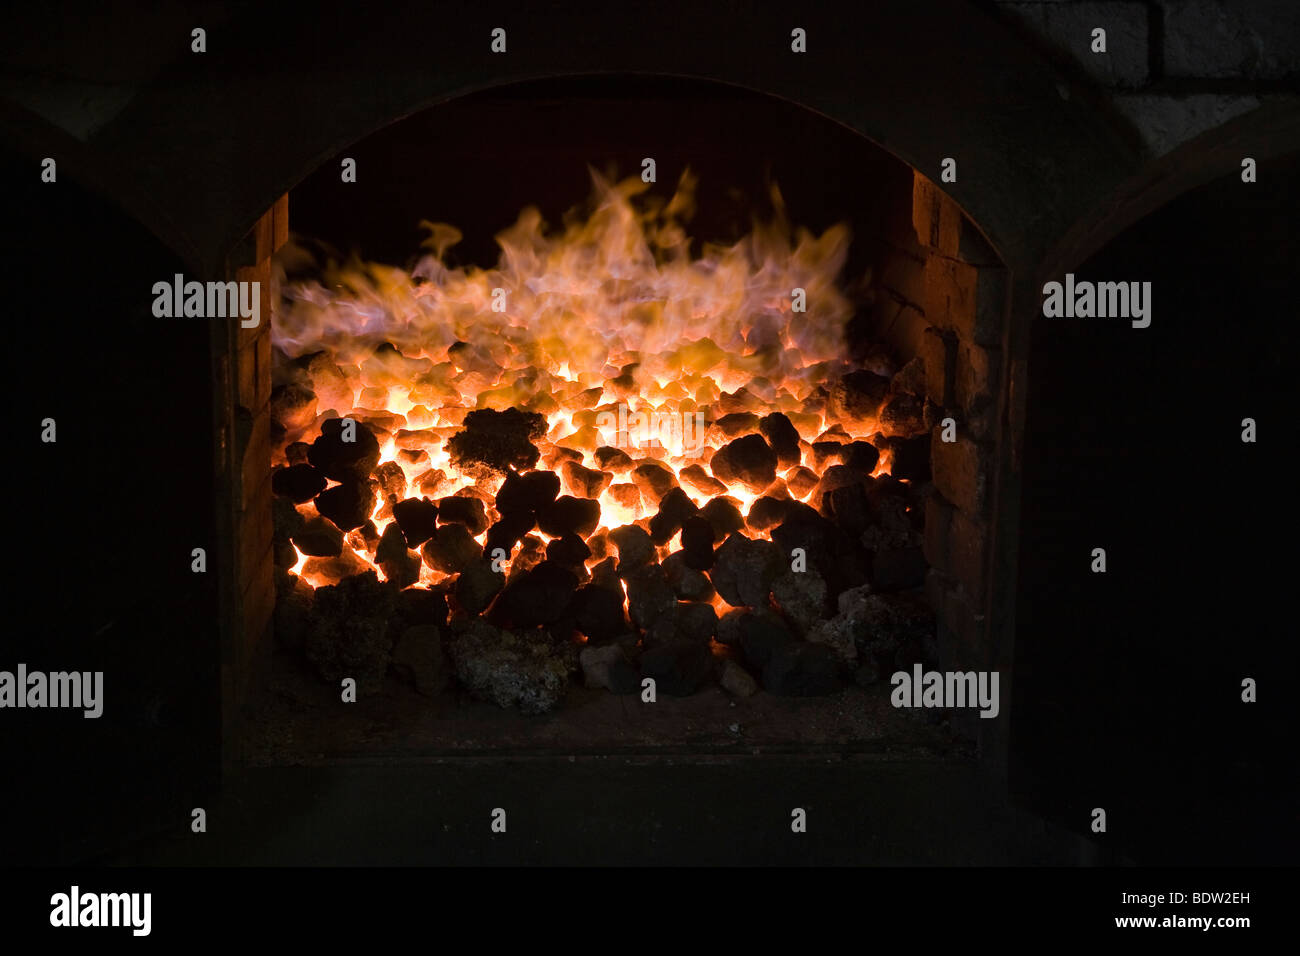 feuer zum whiskyraeuchern, fire to cure, highland park distillery kirkwall, whisky, orkney islands, scotland - Stock Image